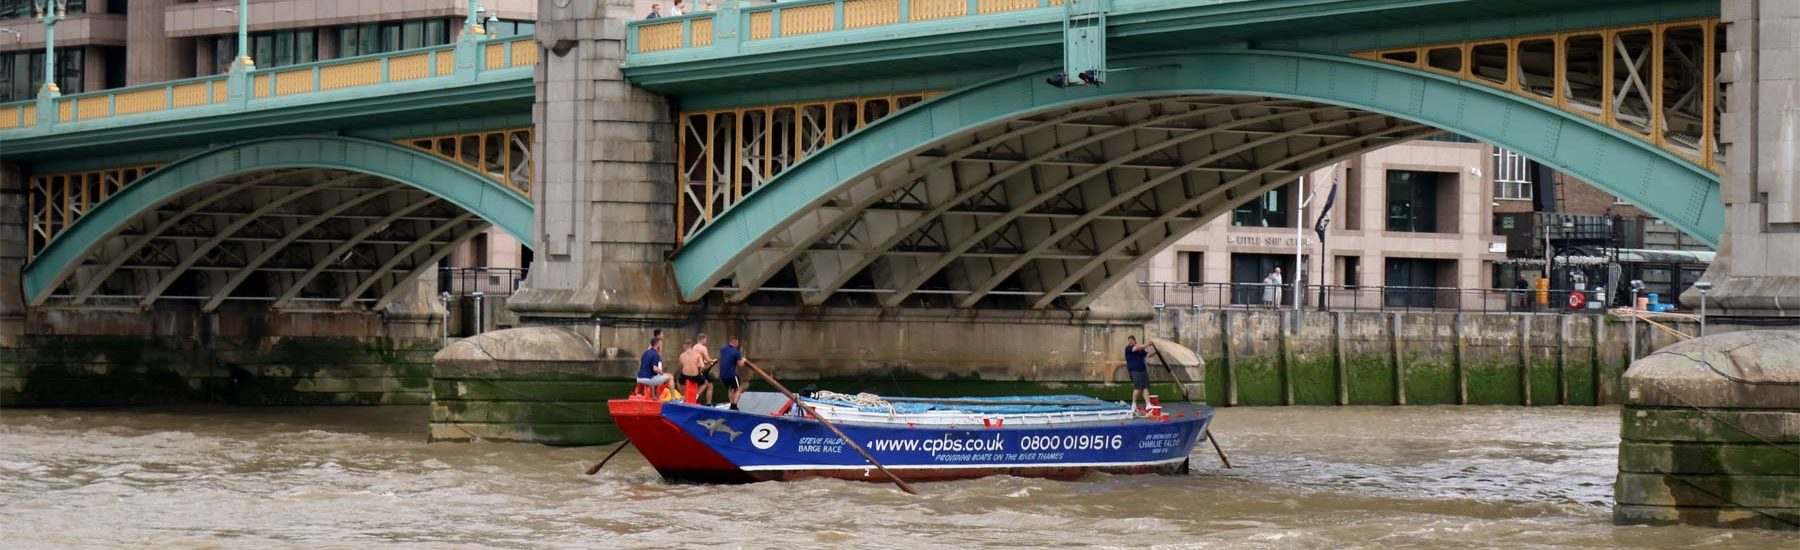 Thames Barge Driving Trust Events